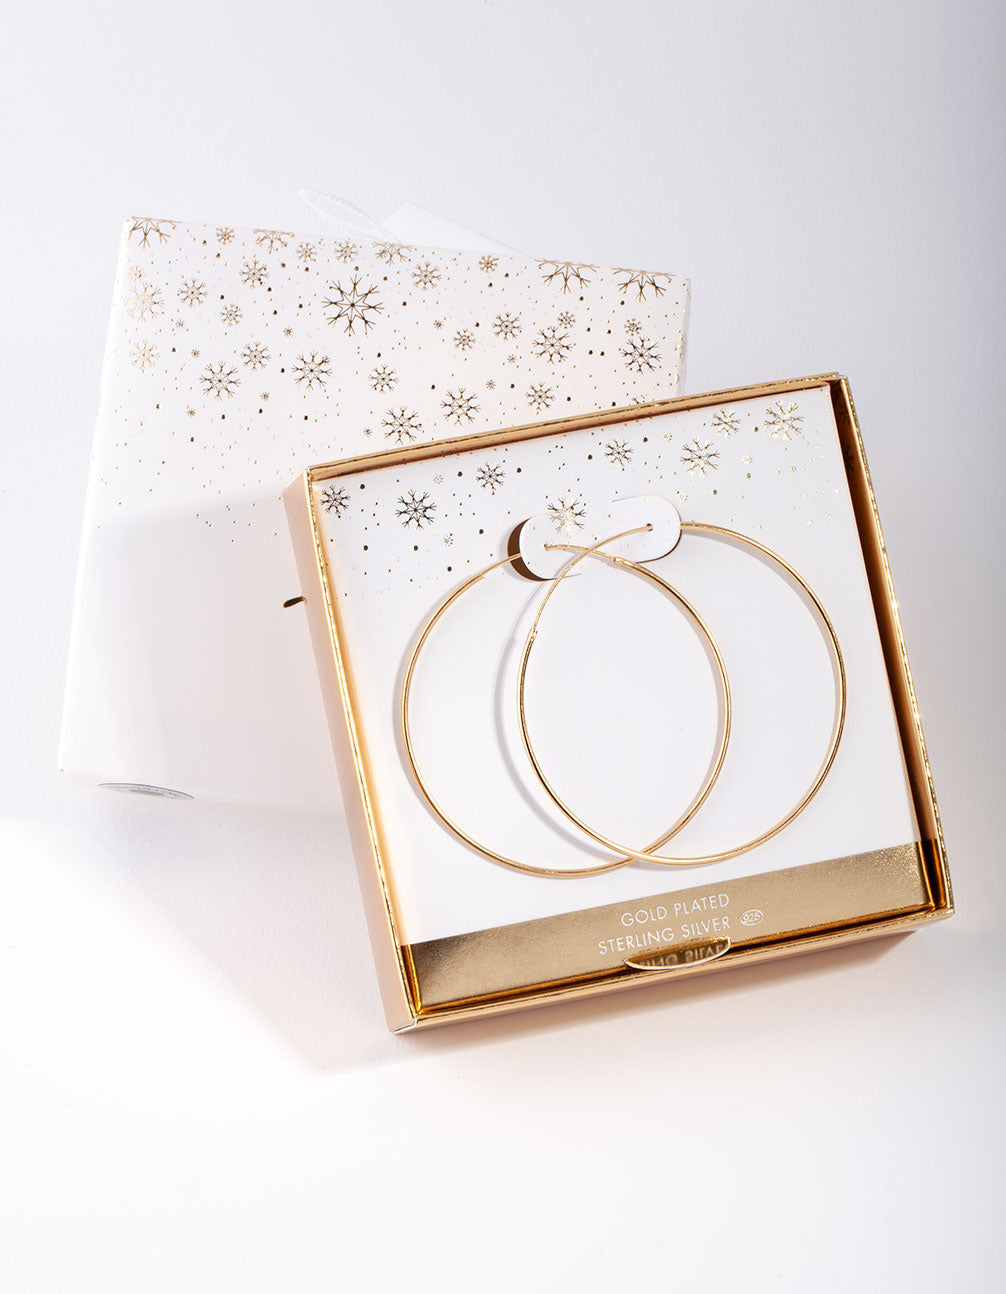 Gold Plated Sterling Silver 50mm Plain Hoop Earring